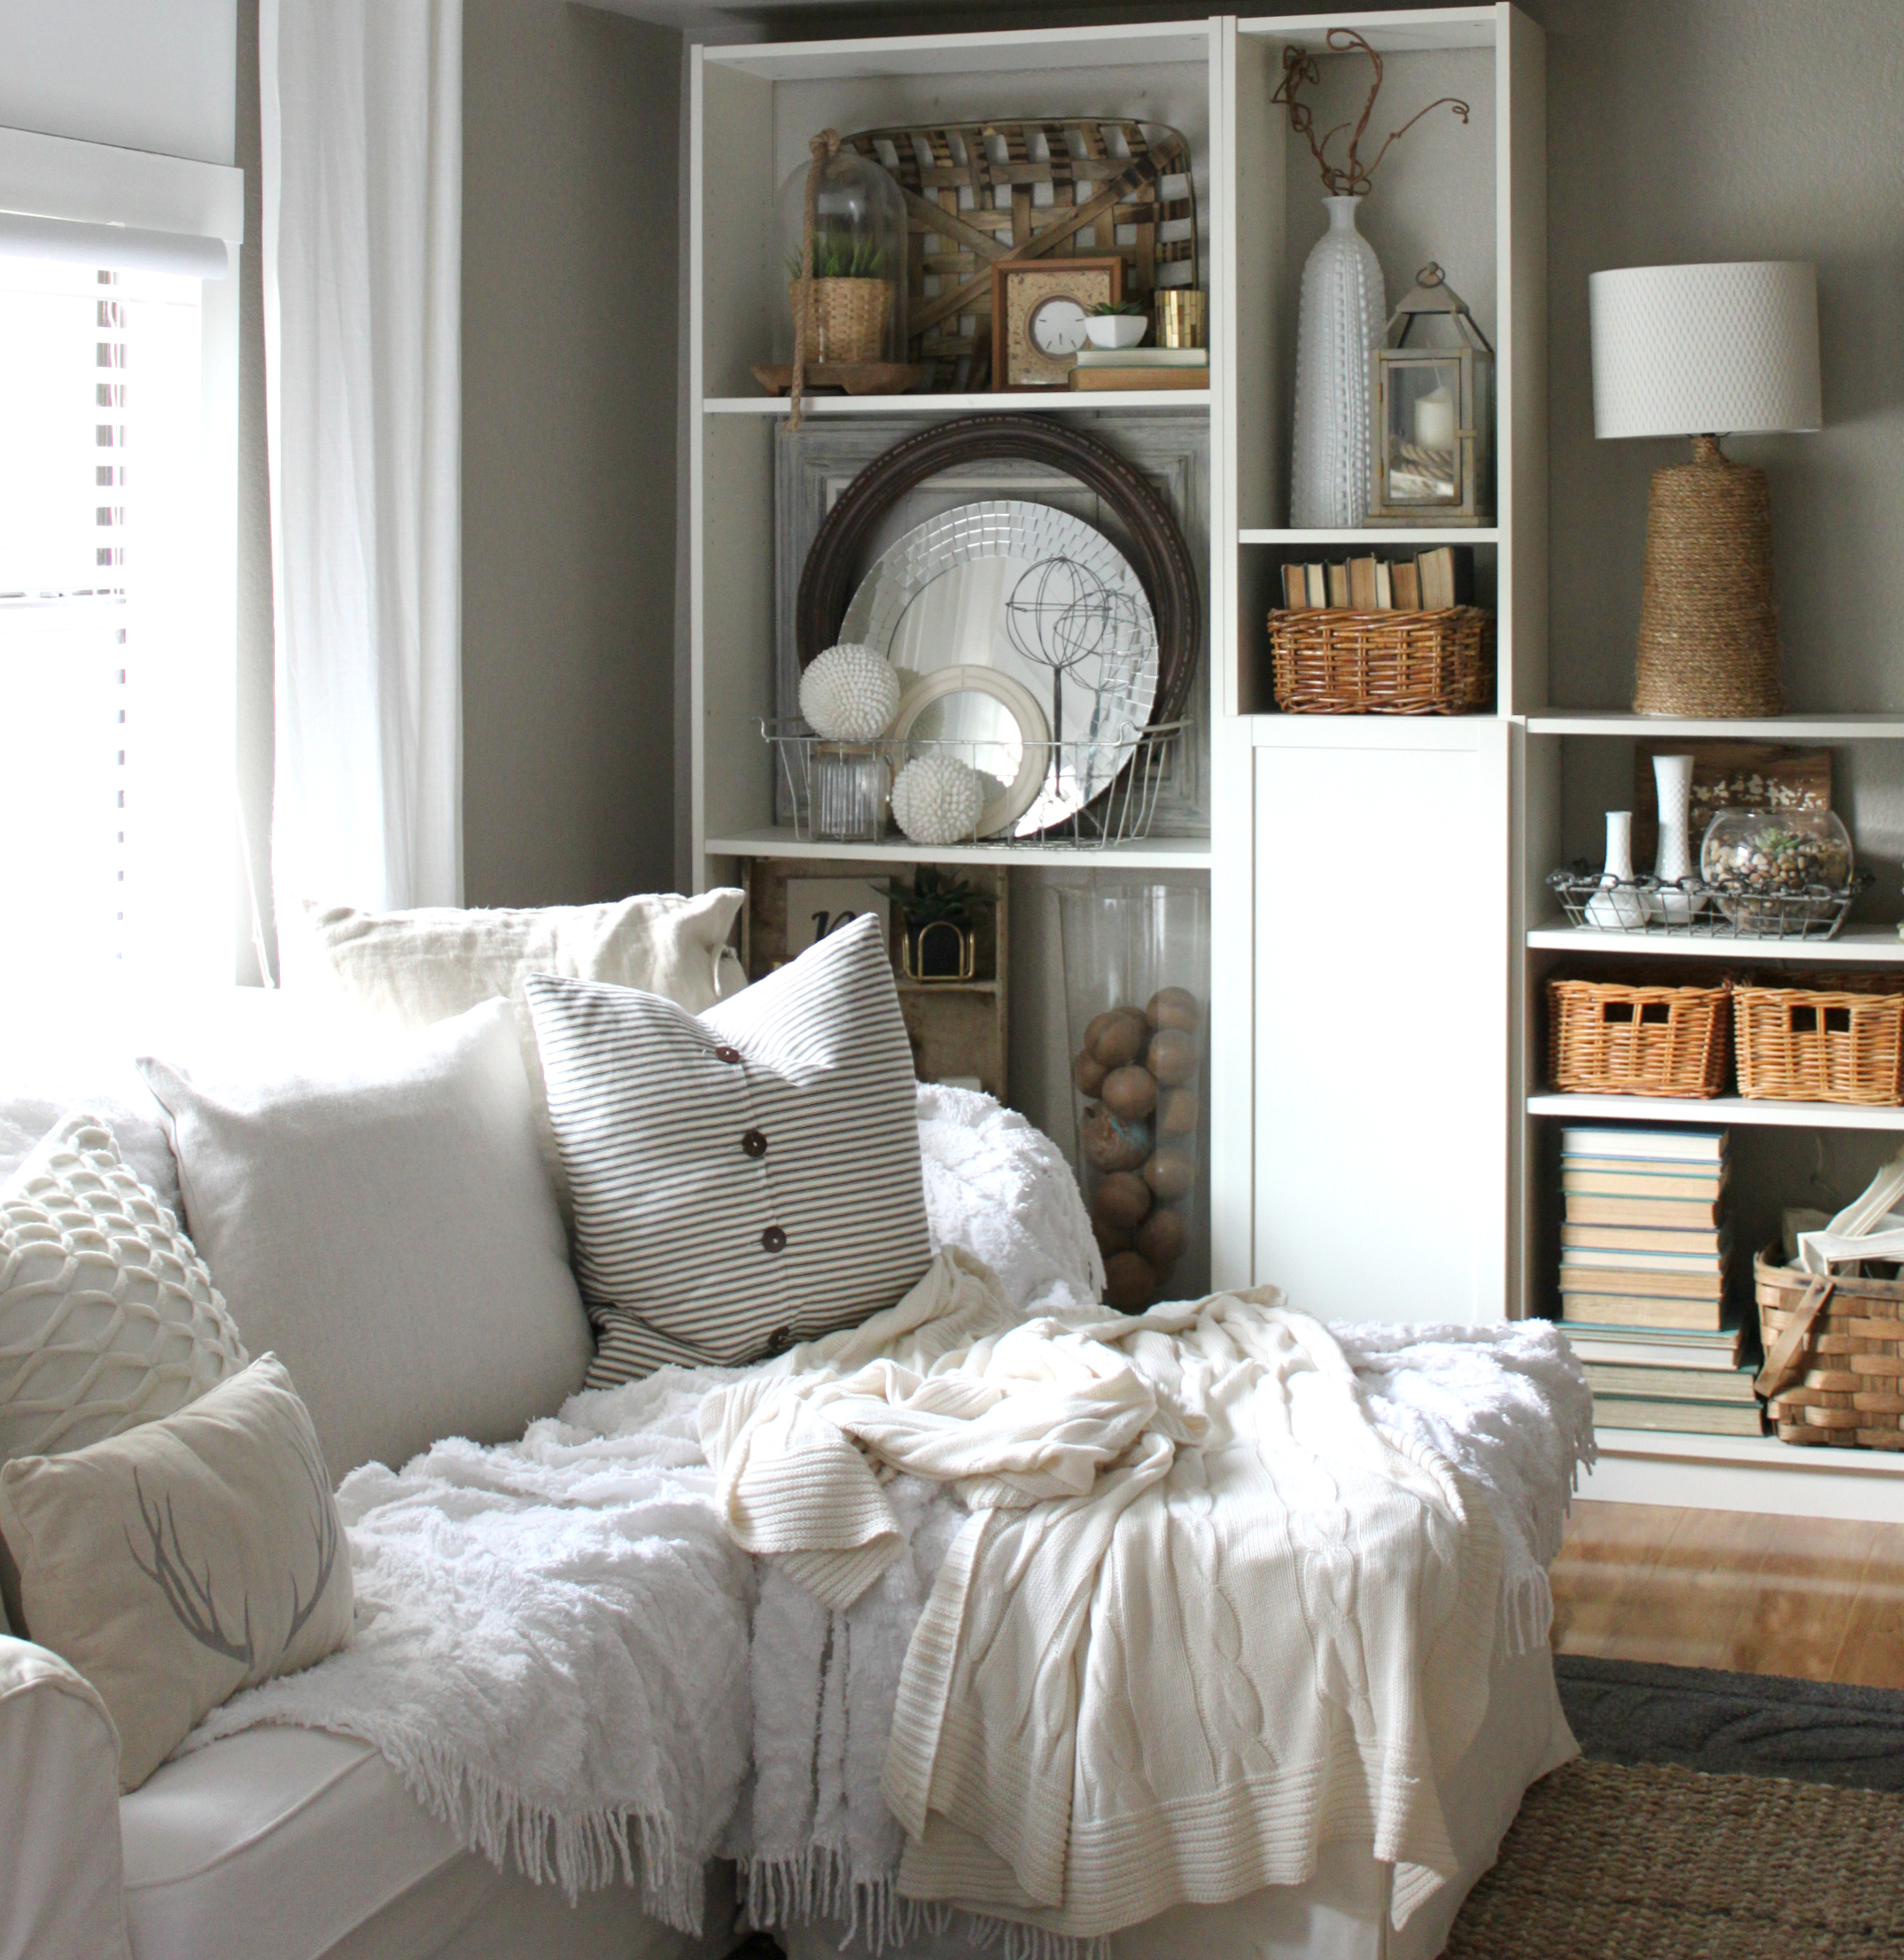 How I Decorate With Ikea Decor An Inspired Nest